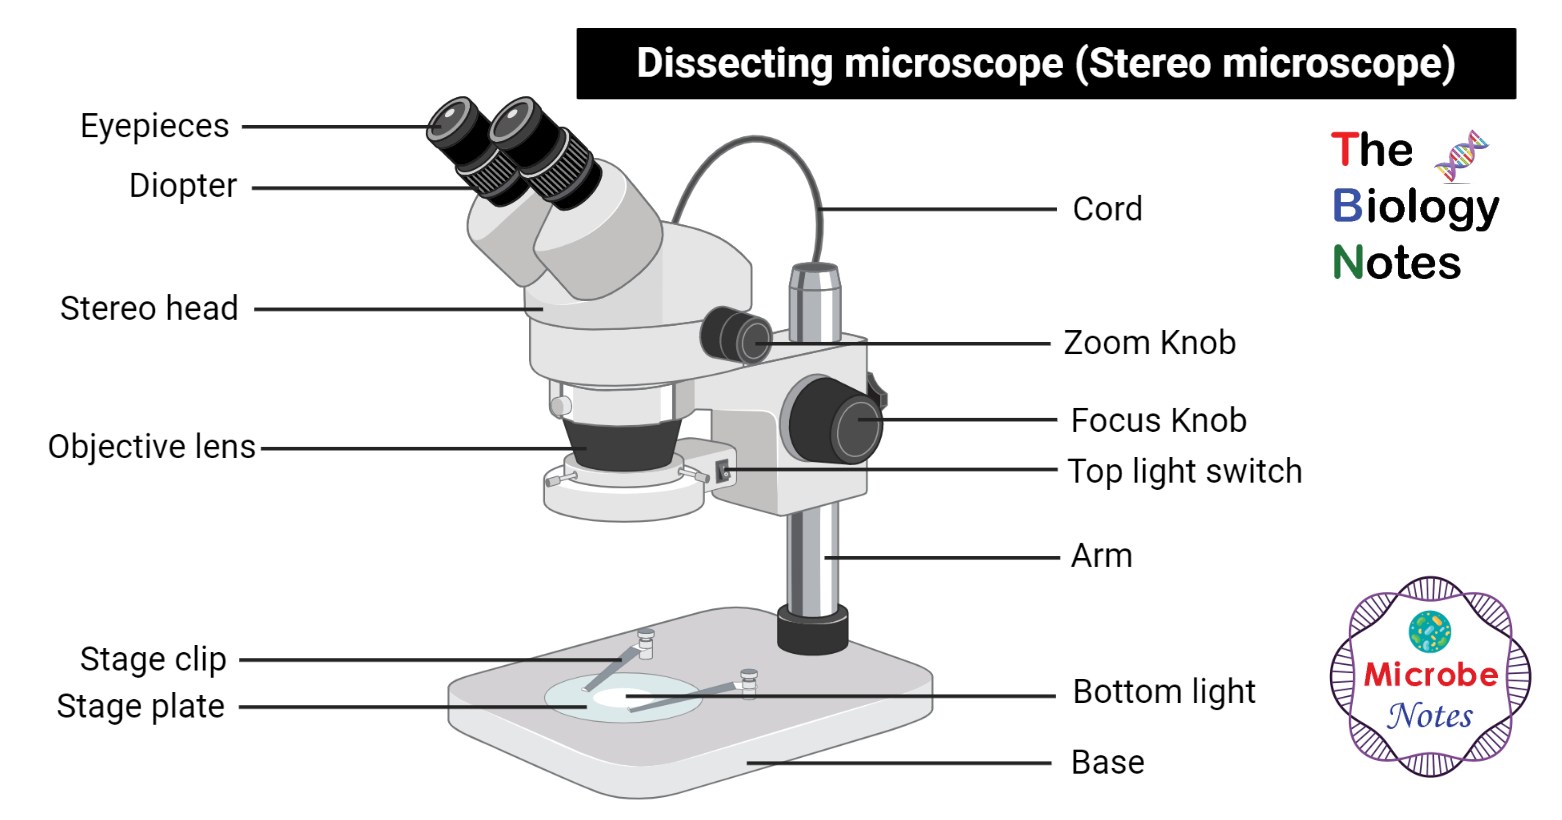 Dissecting Microscope Stereo Or Stereoscopic Microscope